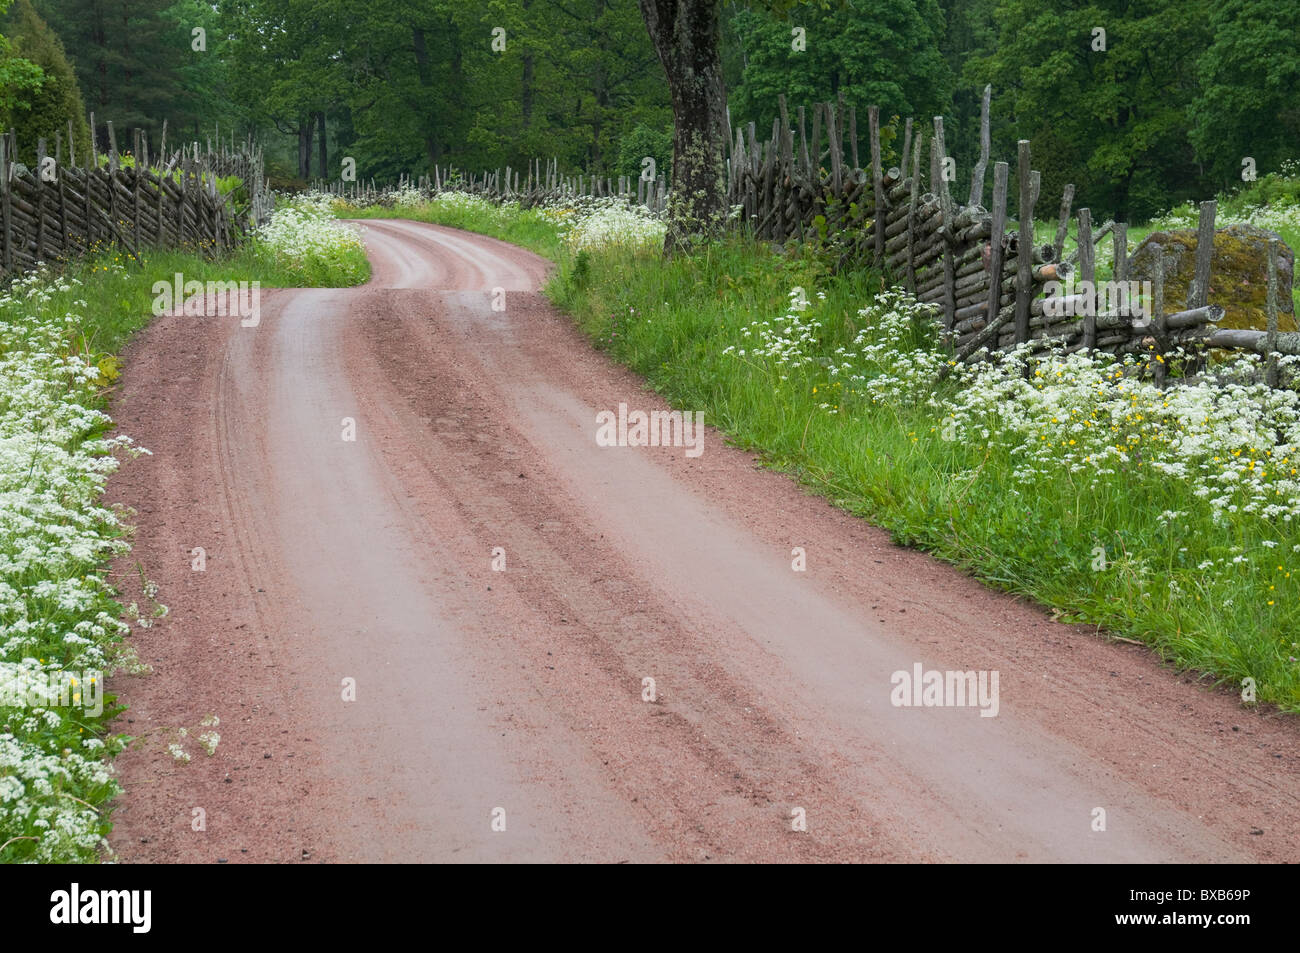 Dirt road through woods in summer - Stock Image